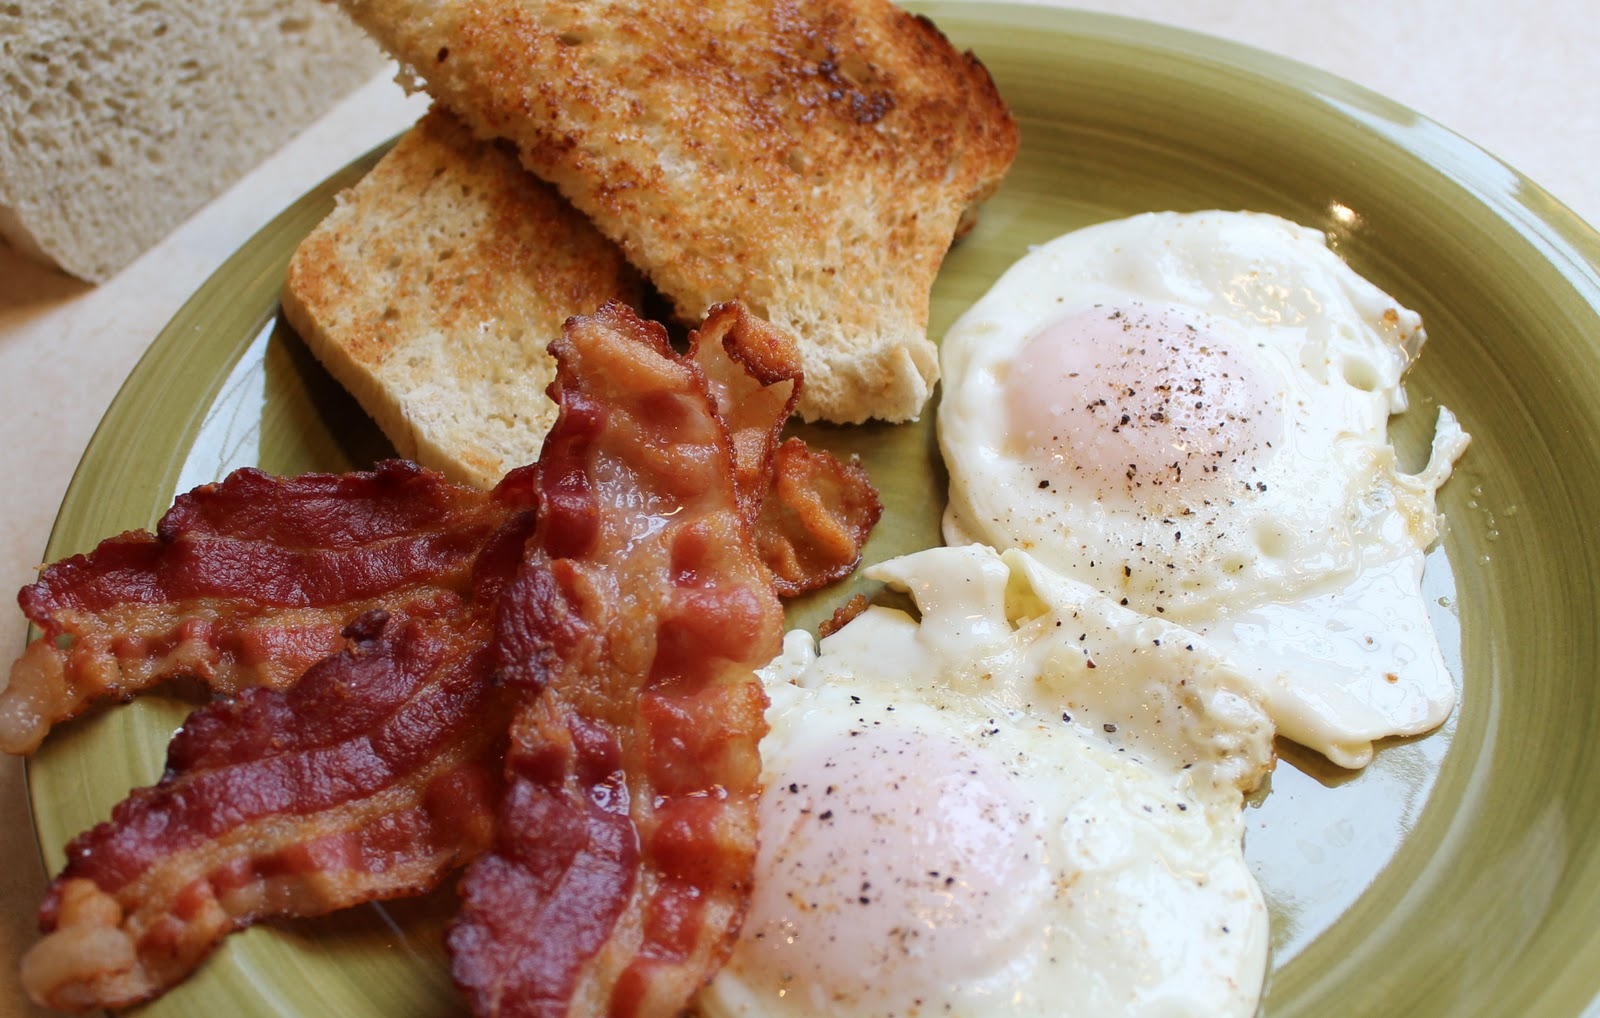 The Best Bacon And Egg Breakfast